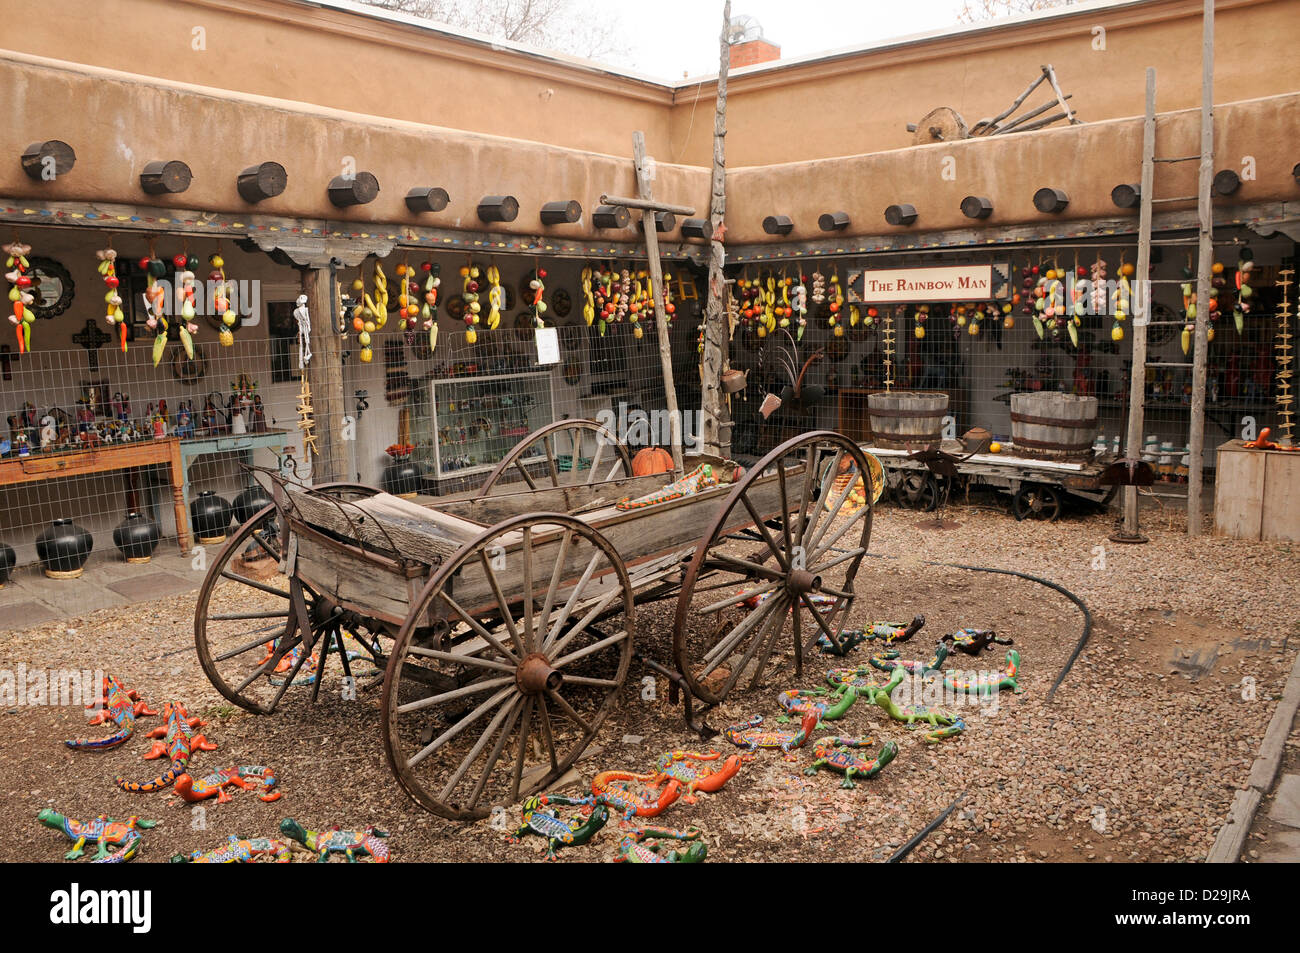 Old Wagon In Courtyard, Santa Fe, New Mexico - Stock Image